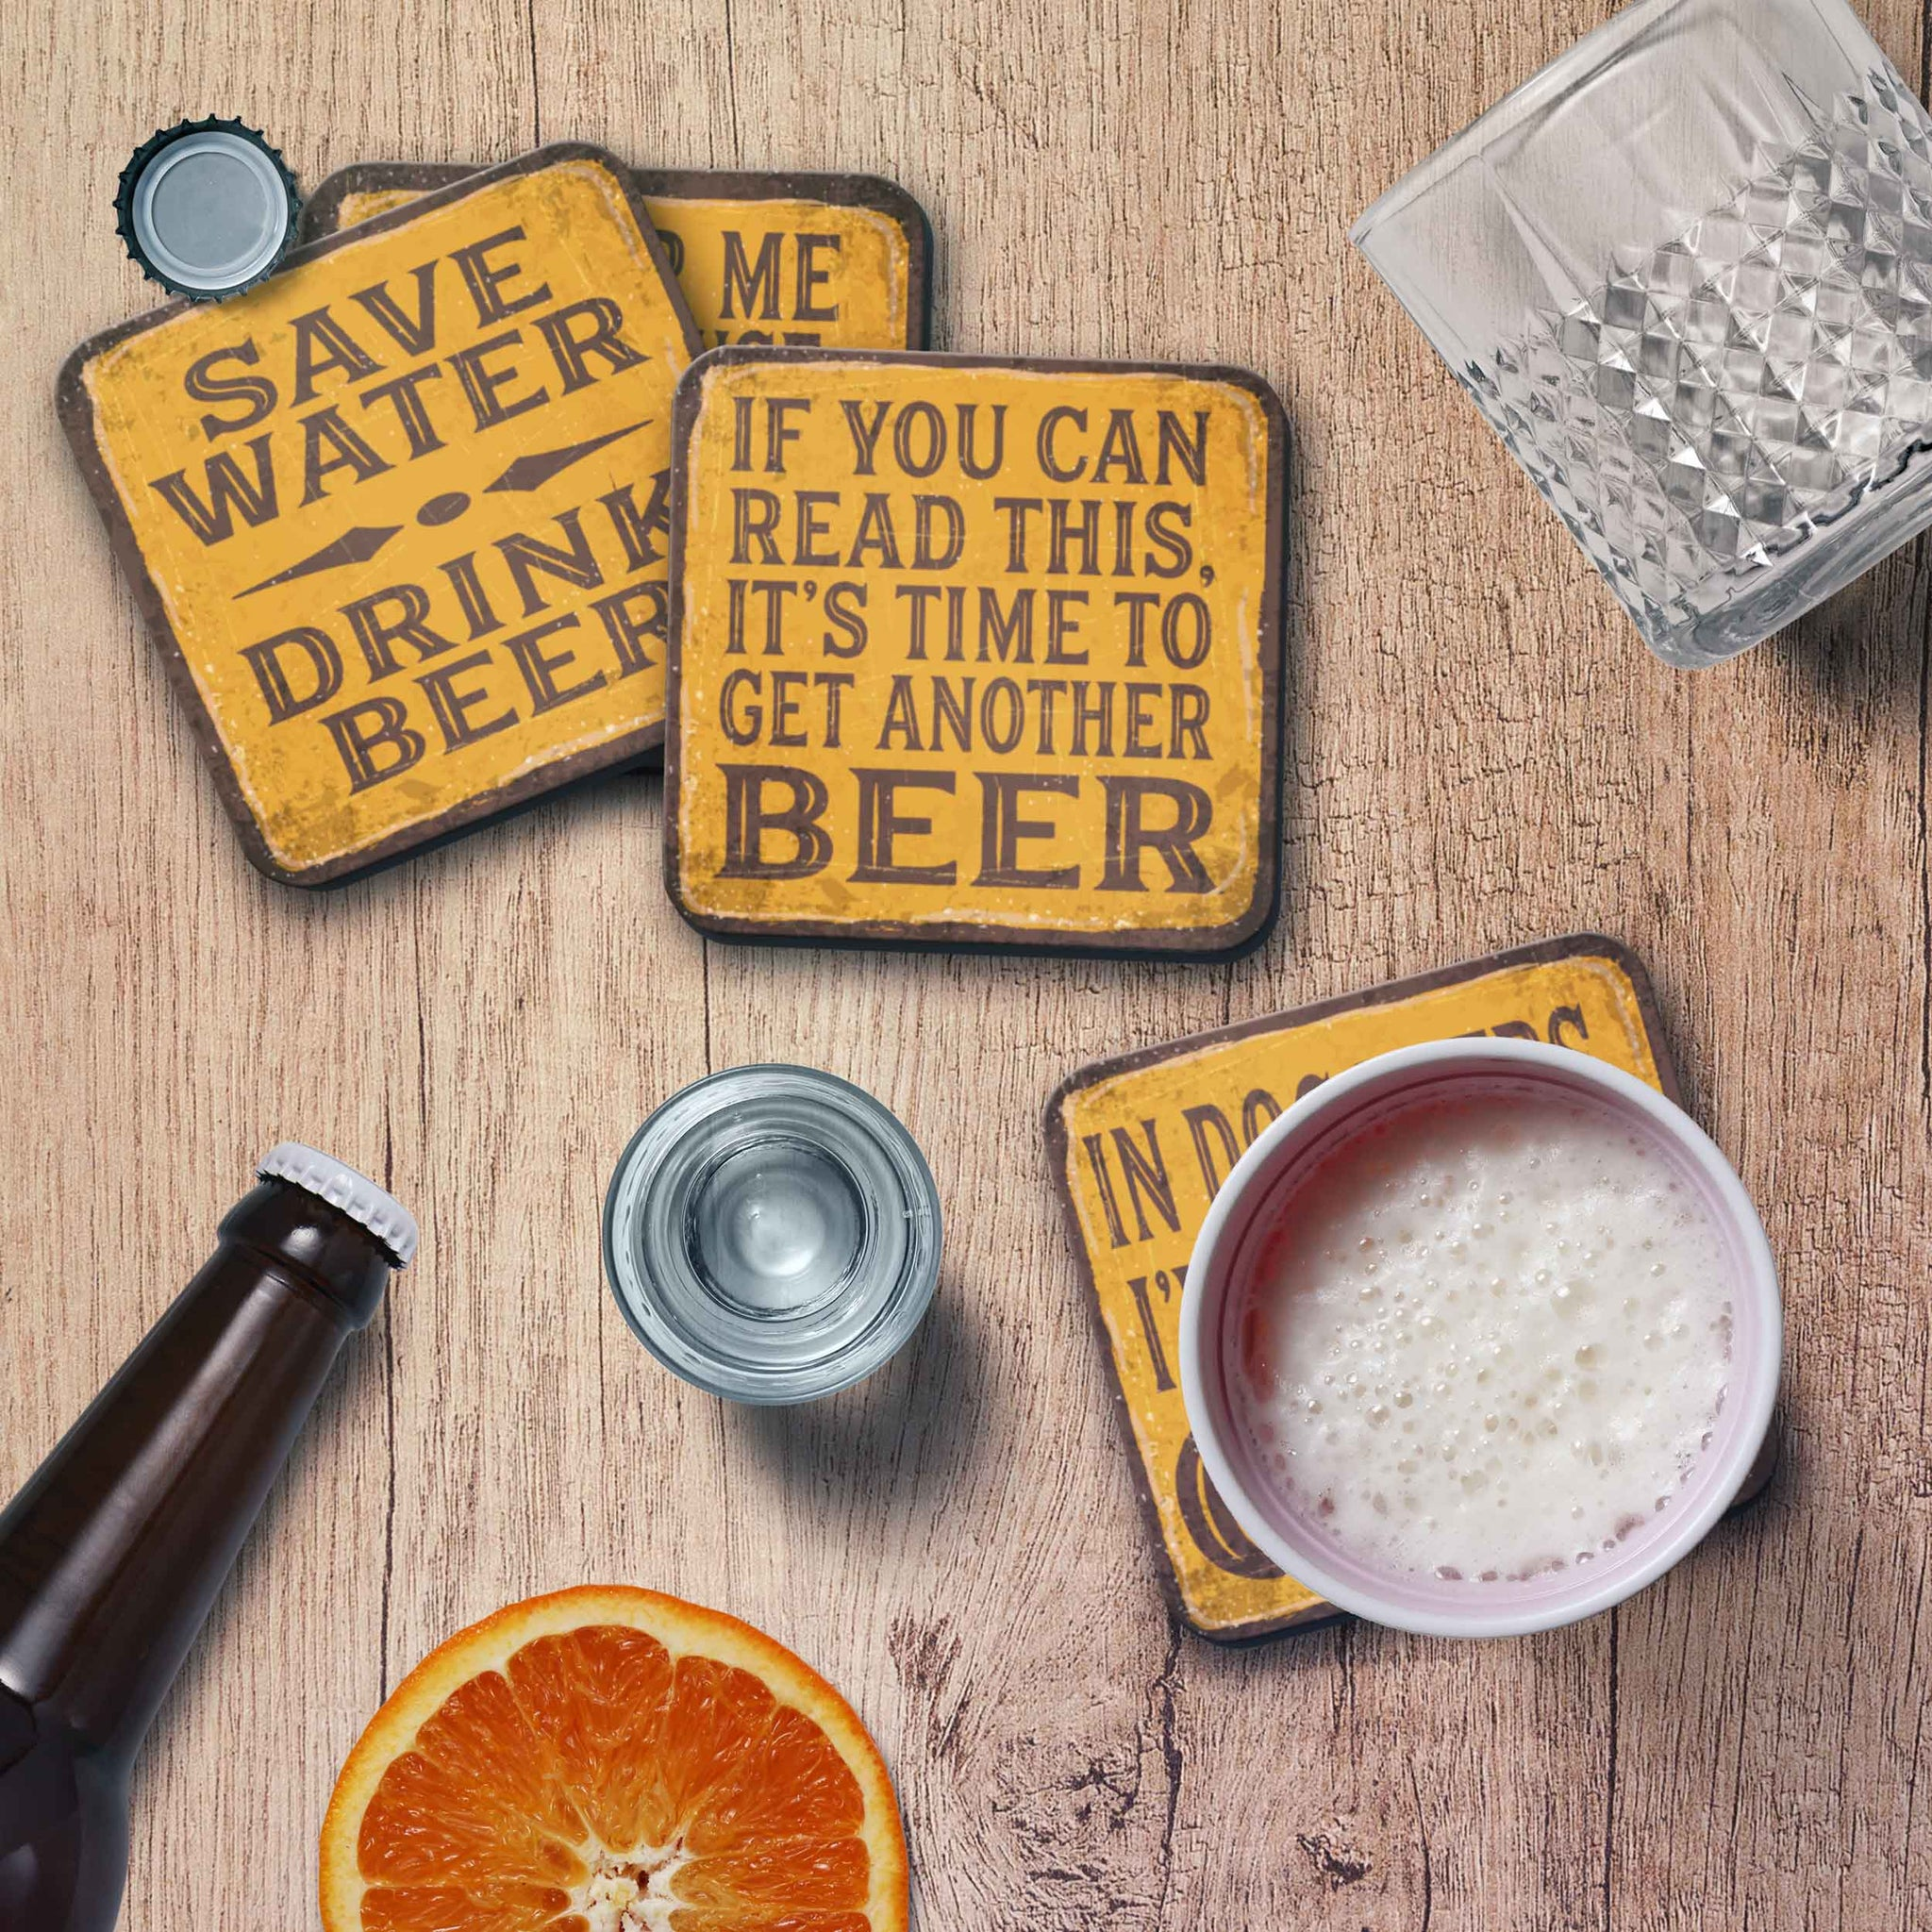 CopyrightPaisleyGroveGIFTS Set of 4 Funny Coasters for Beer Lovers with Beer Quotes on Vintage yellow design